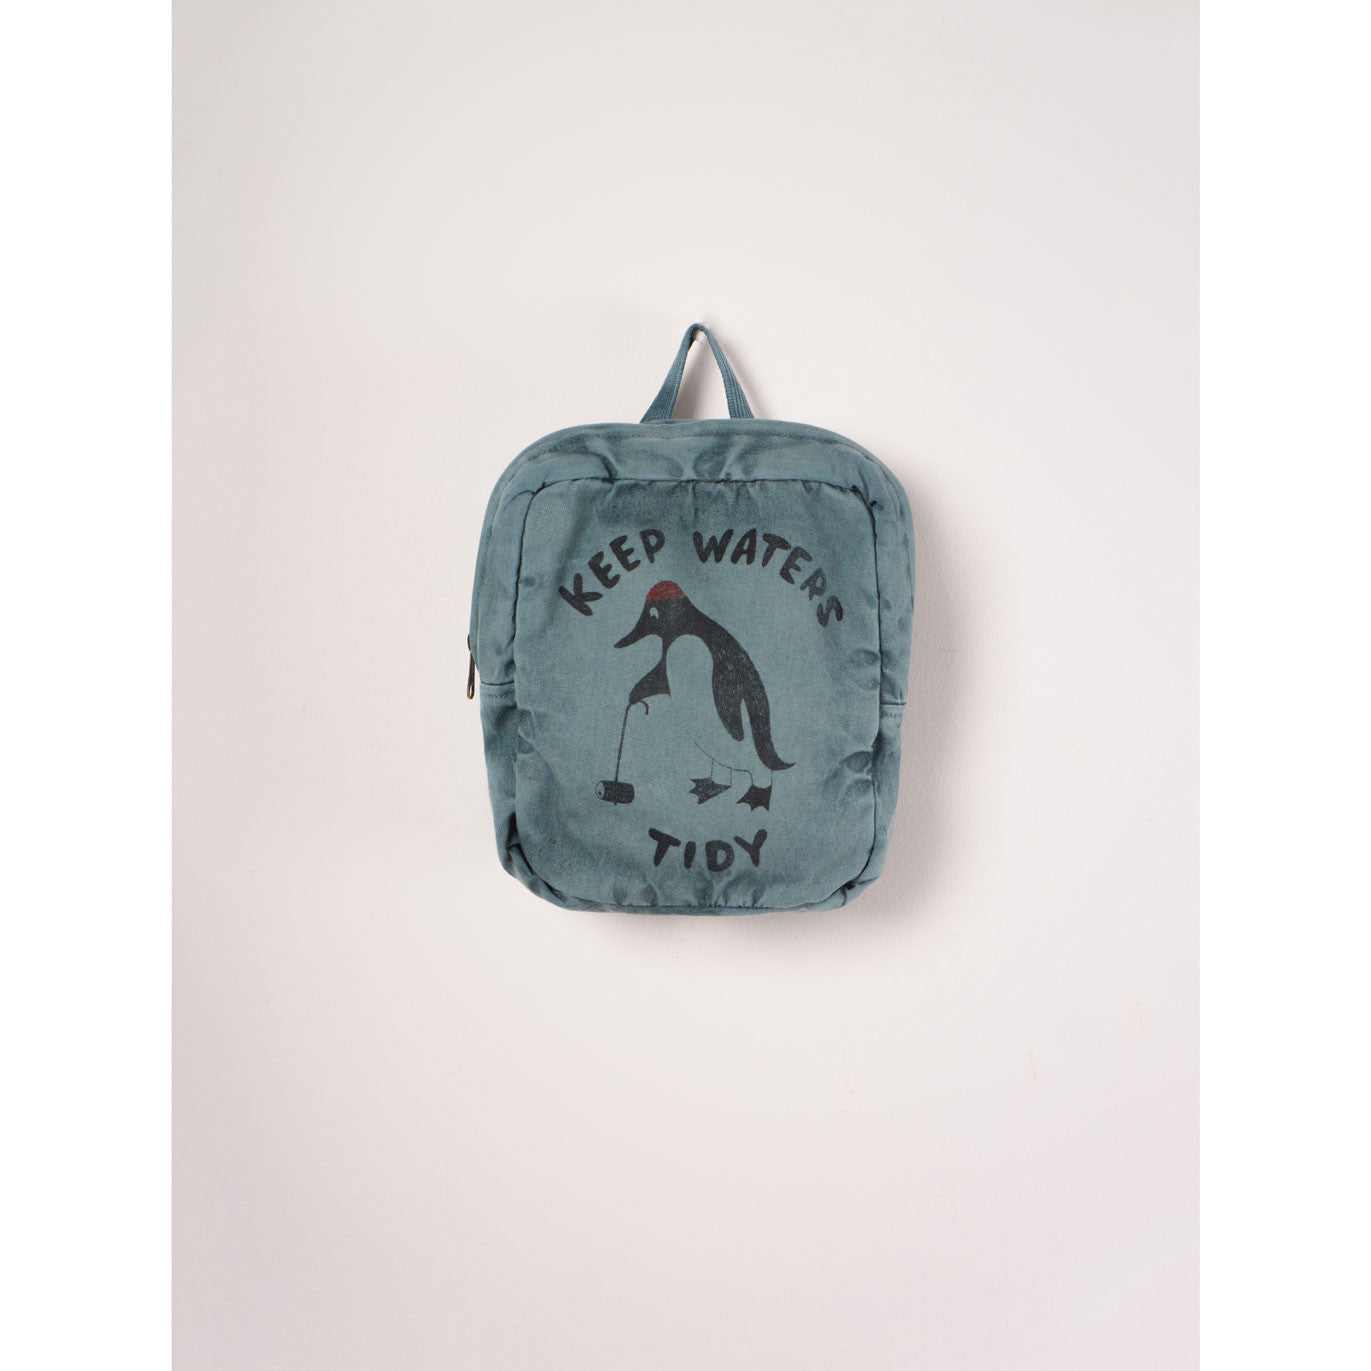 Bobo Choses Keep waters Tidy School Bag - Ladida